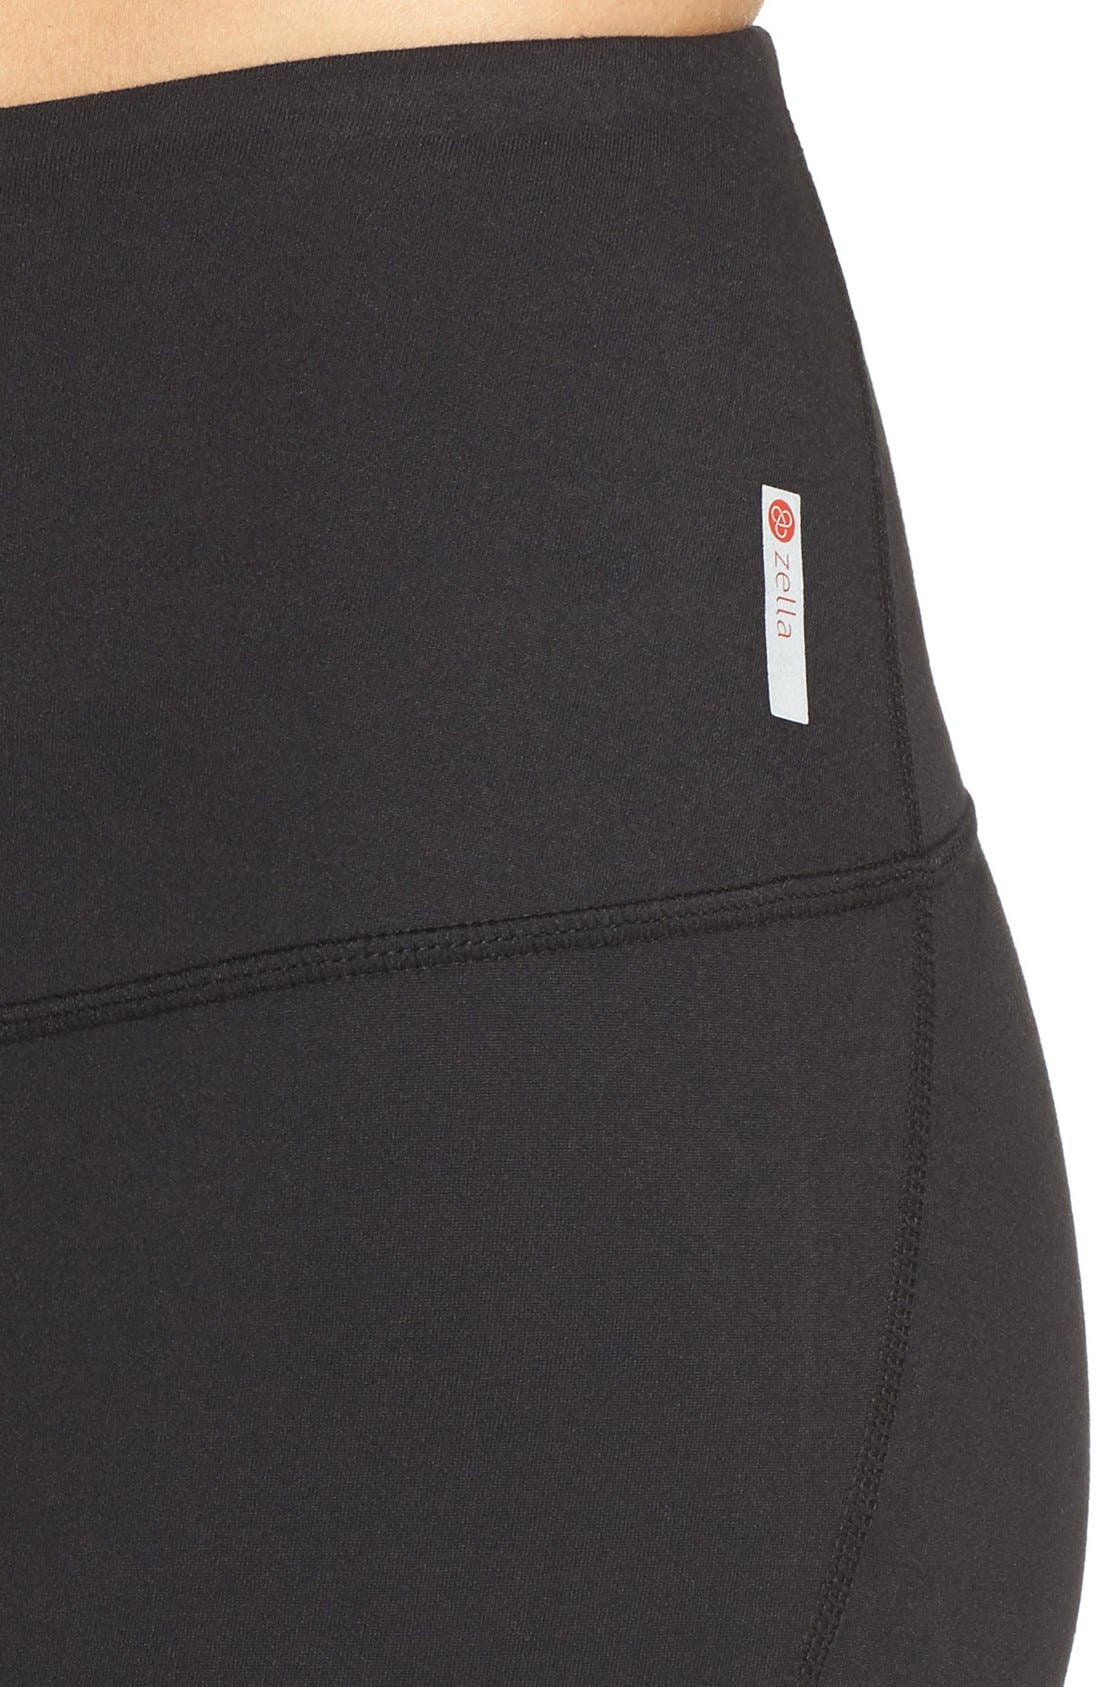 ZELLA, Barely Flare Live in High Waist Pants, Alternate thumbnail 6, color, BLACK